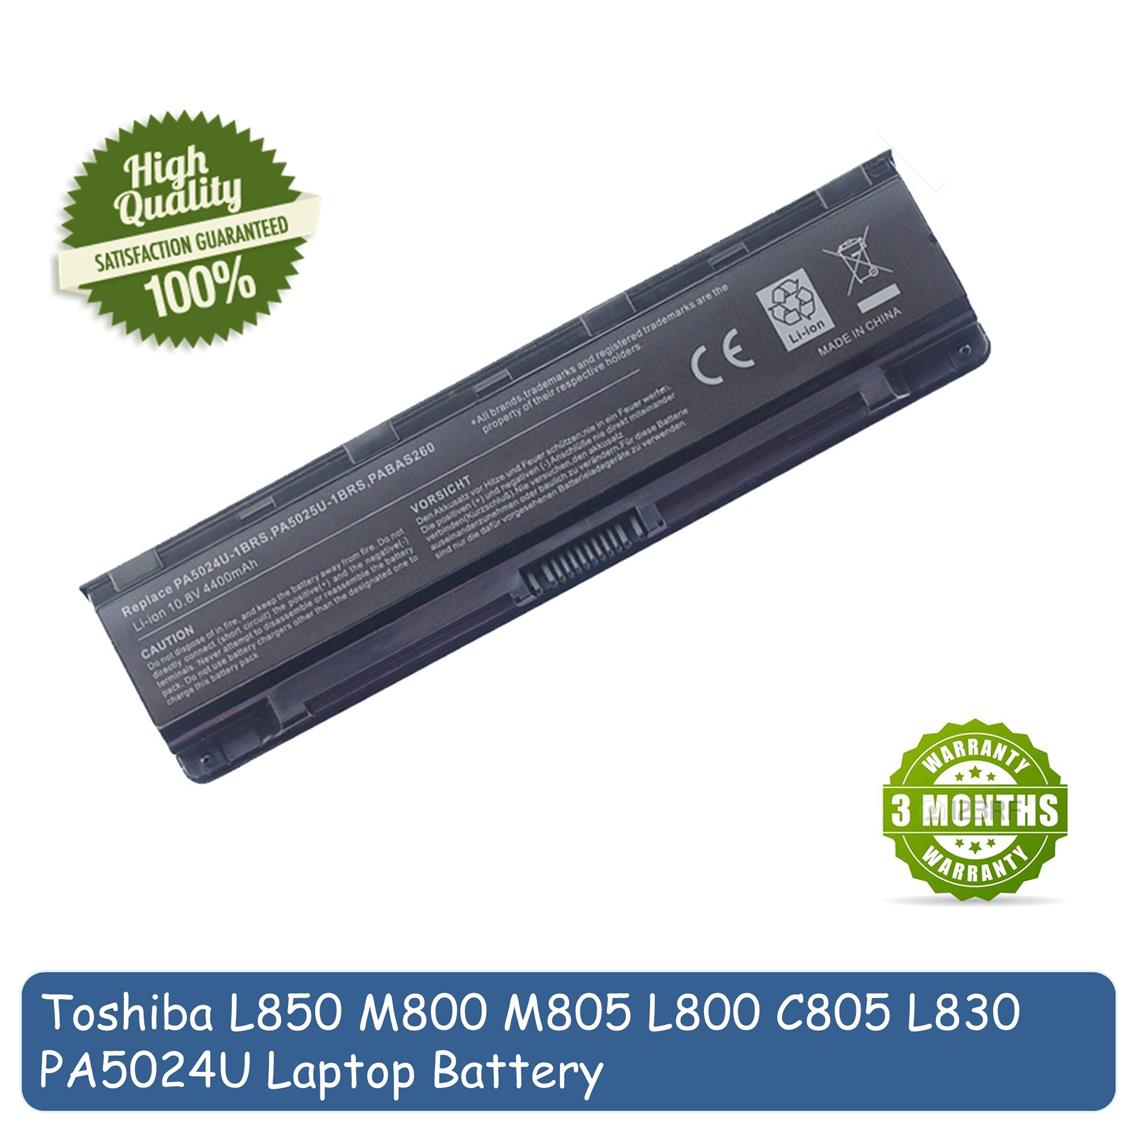 Toshiba Satellite L830 L840 L850 M830 M850 C805 C830 C840 C850 Battery